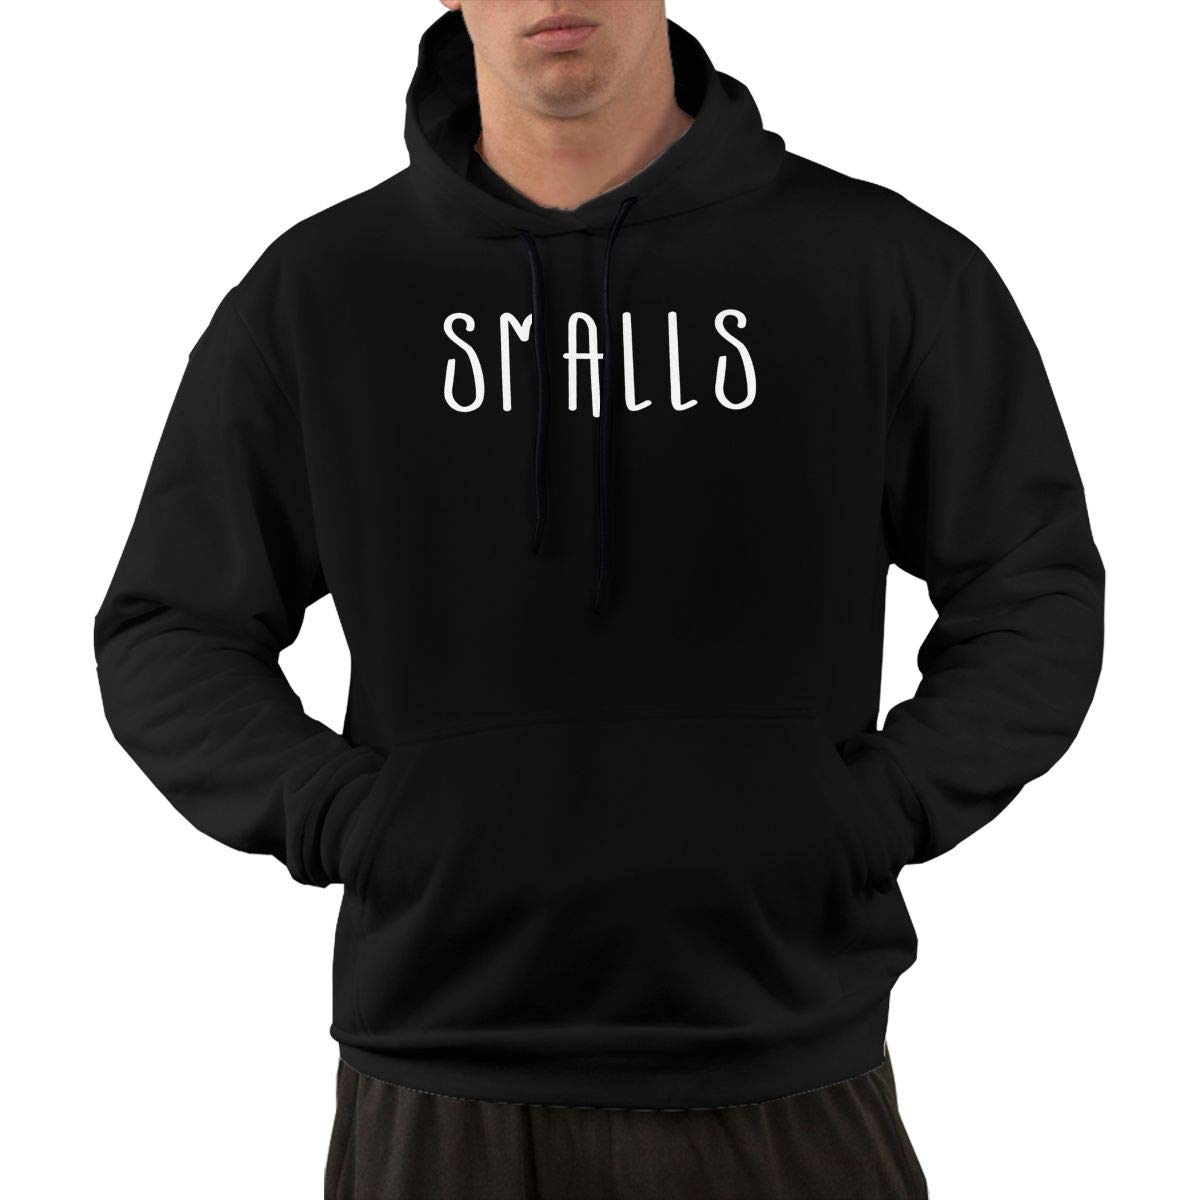 Your Killing Me Smalls Hoodie Long Sleeve Sweatshirts with Front Pocket